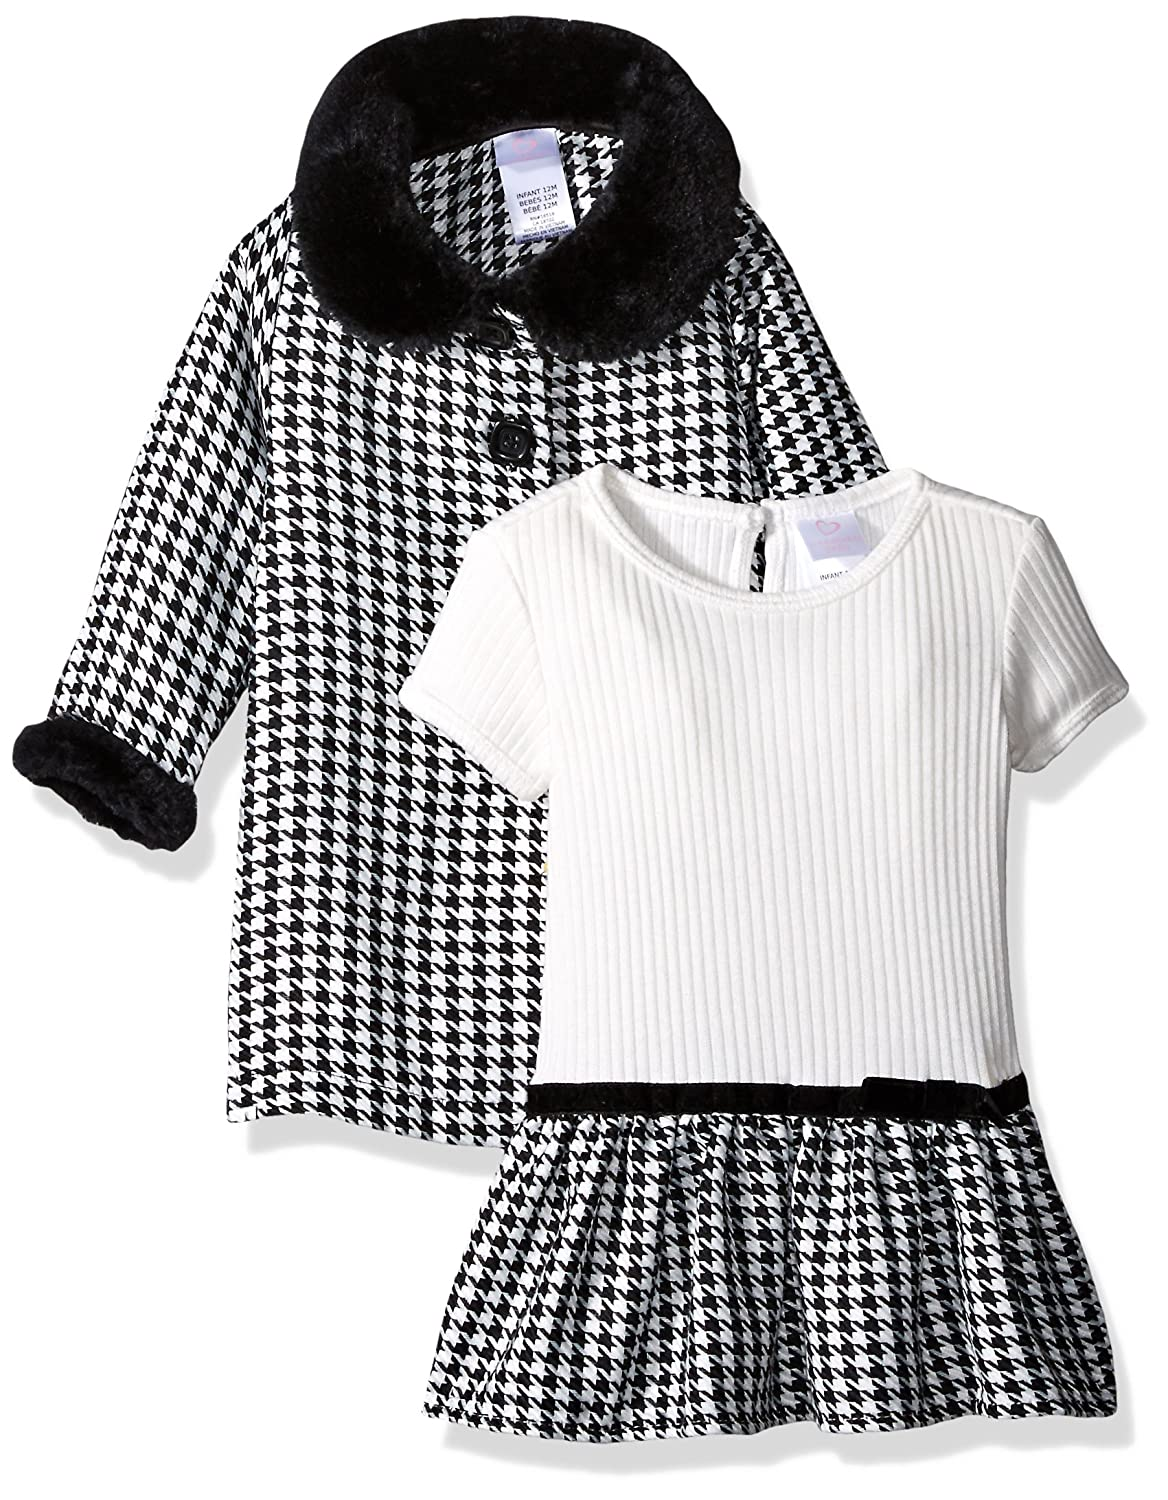 3326e6c82ec5f Youngland Baby Girls' 2 Piece Coat Set with Knit to Woven Dress: Amazon.in:  Clothing & Accessories